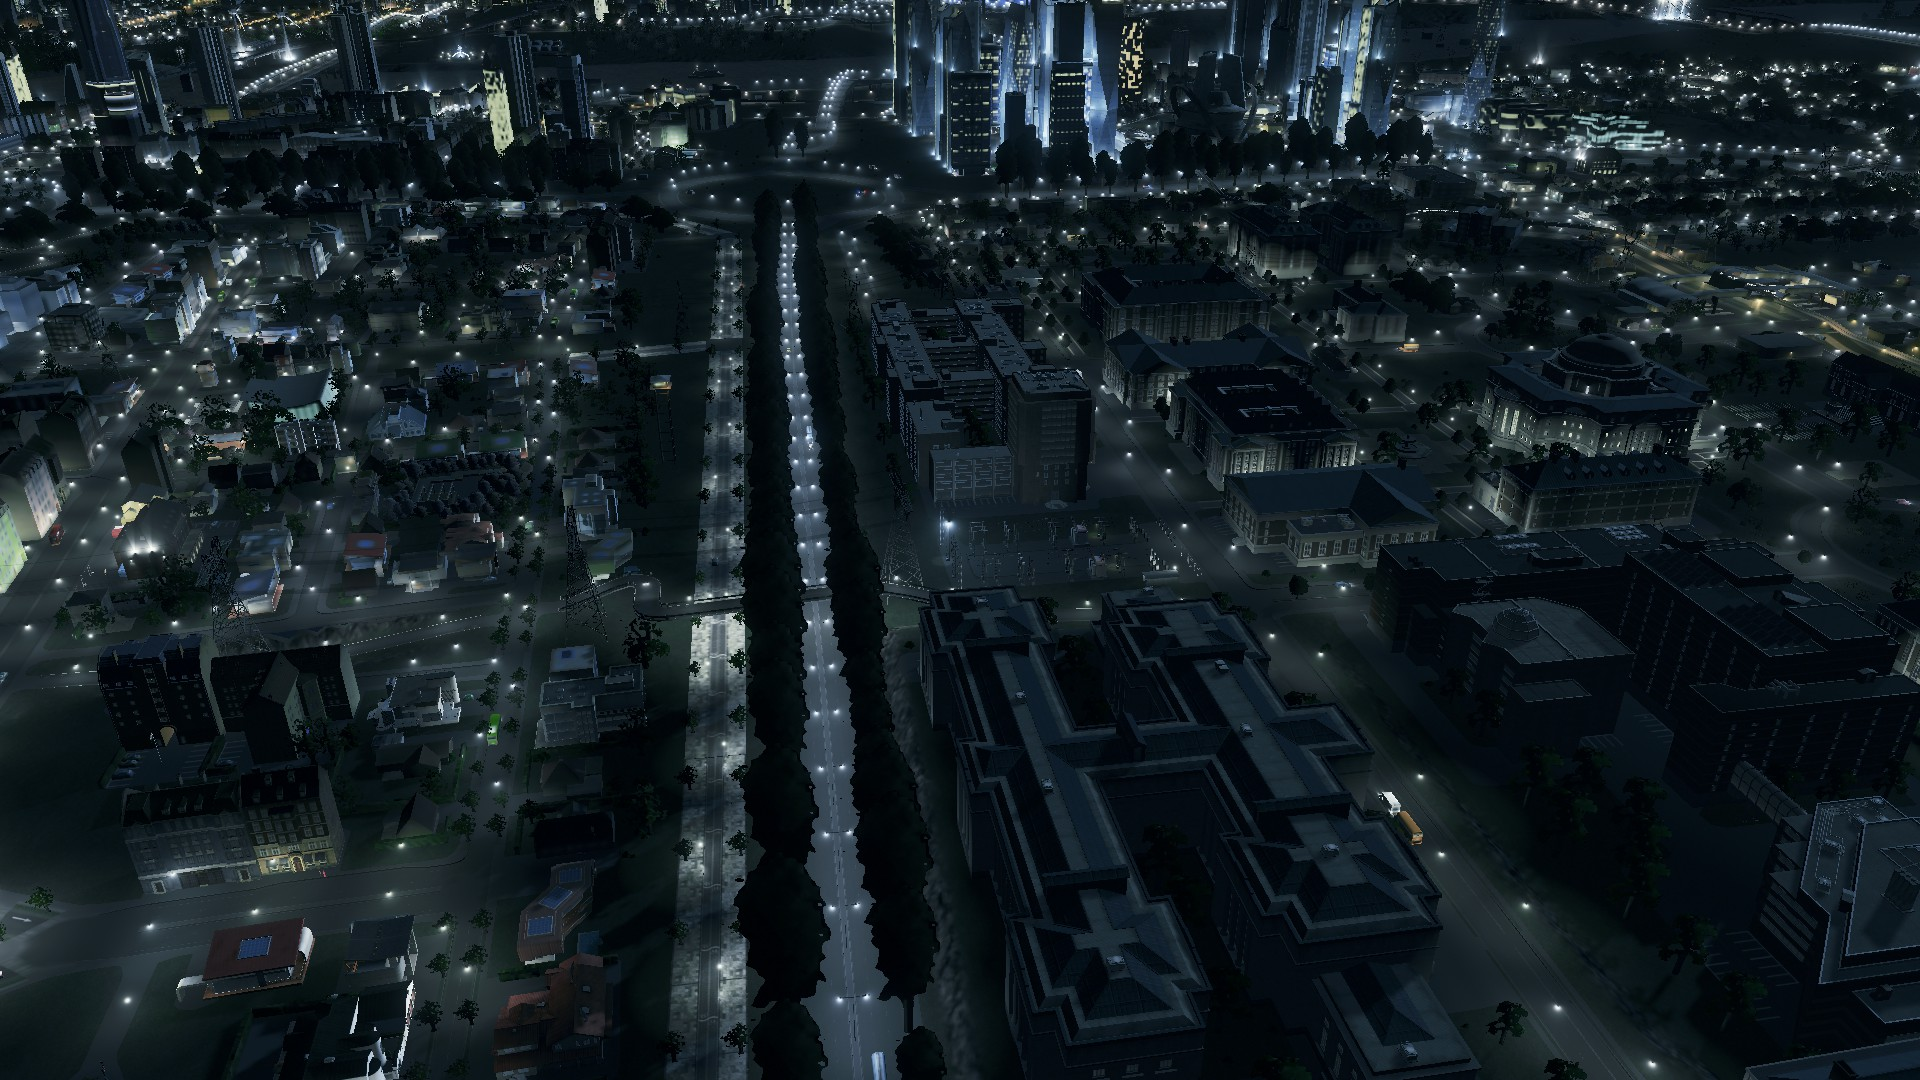 Operation Grafton Gully: #CitiesSkylines to Mimick Highway Replacement in Manukau